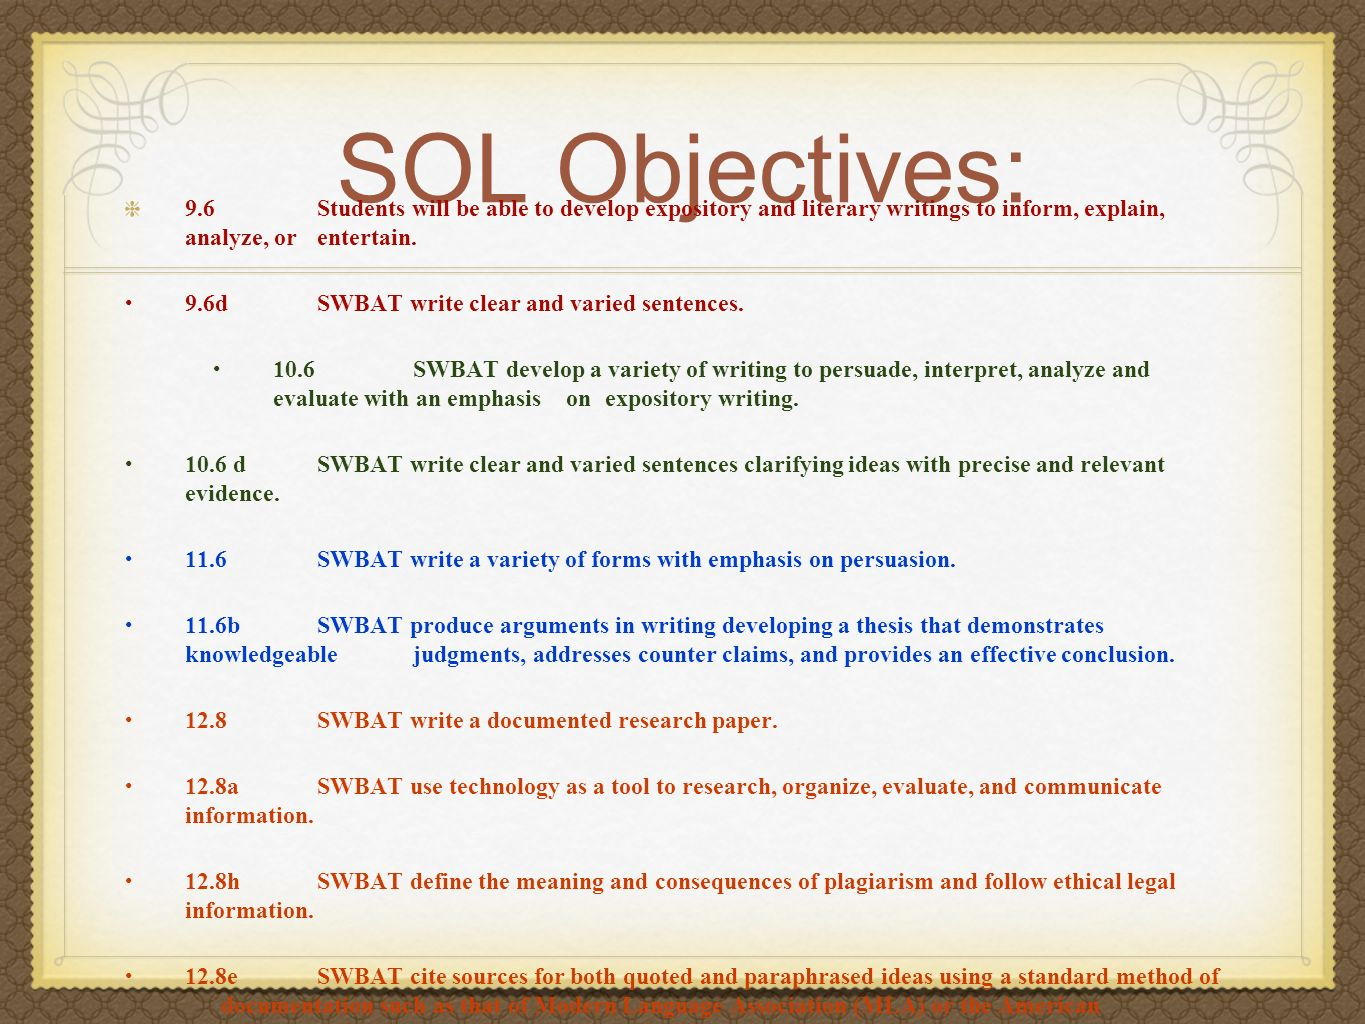 SOL Objectives: 9.6 Students will be able to develop expository and literary writings to inform, explain, analyze, or entertain.